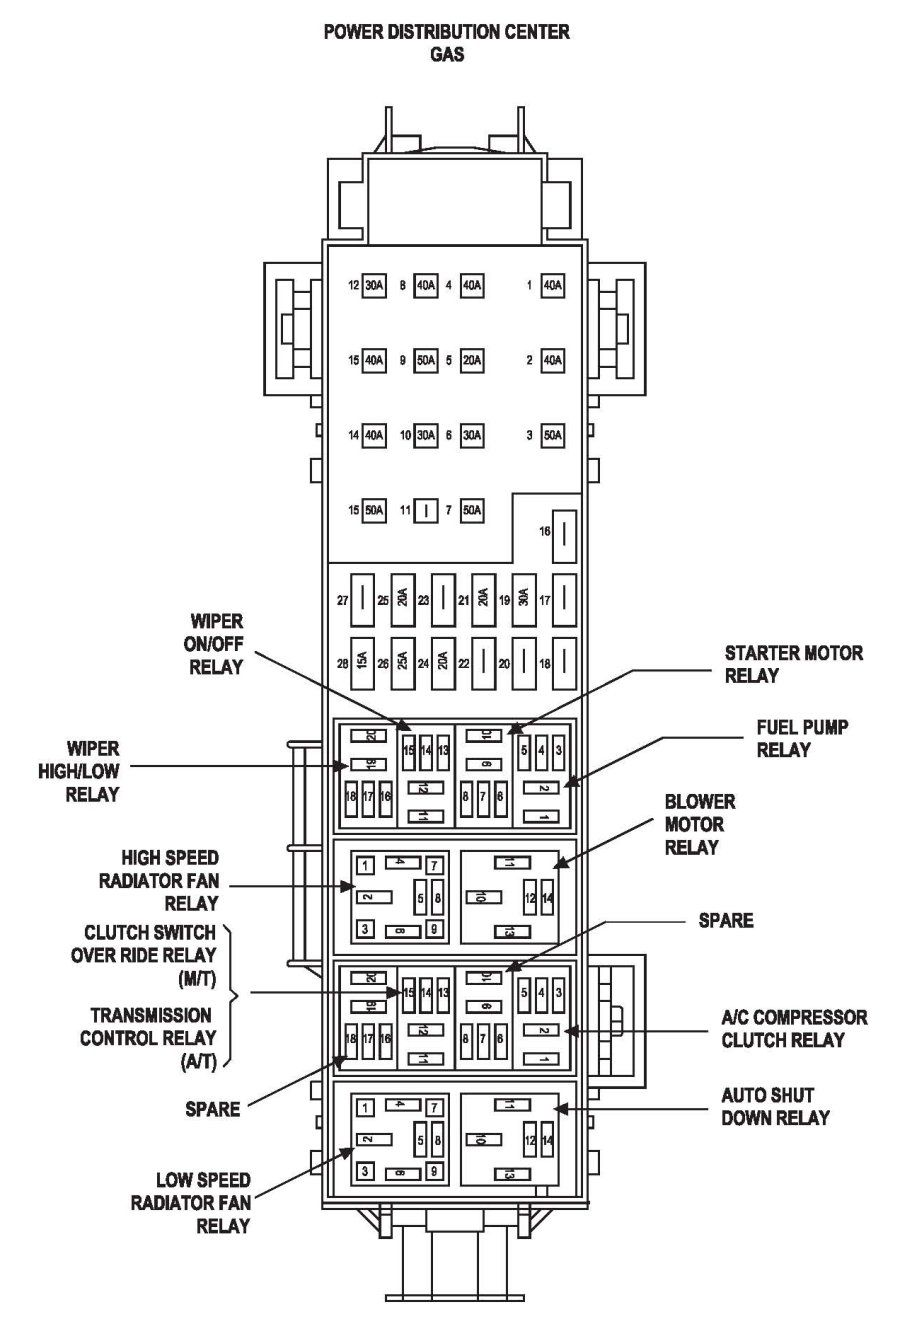 b3536c3739783eb19f827744cc42c3c4 jeep liberty fuse box diagram image details jeep liberty 2006 jeep wrangler fuse box diagram at fashall.co